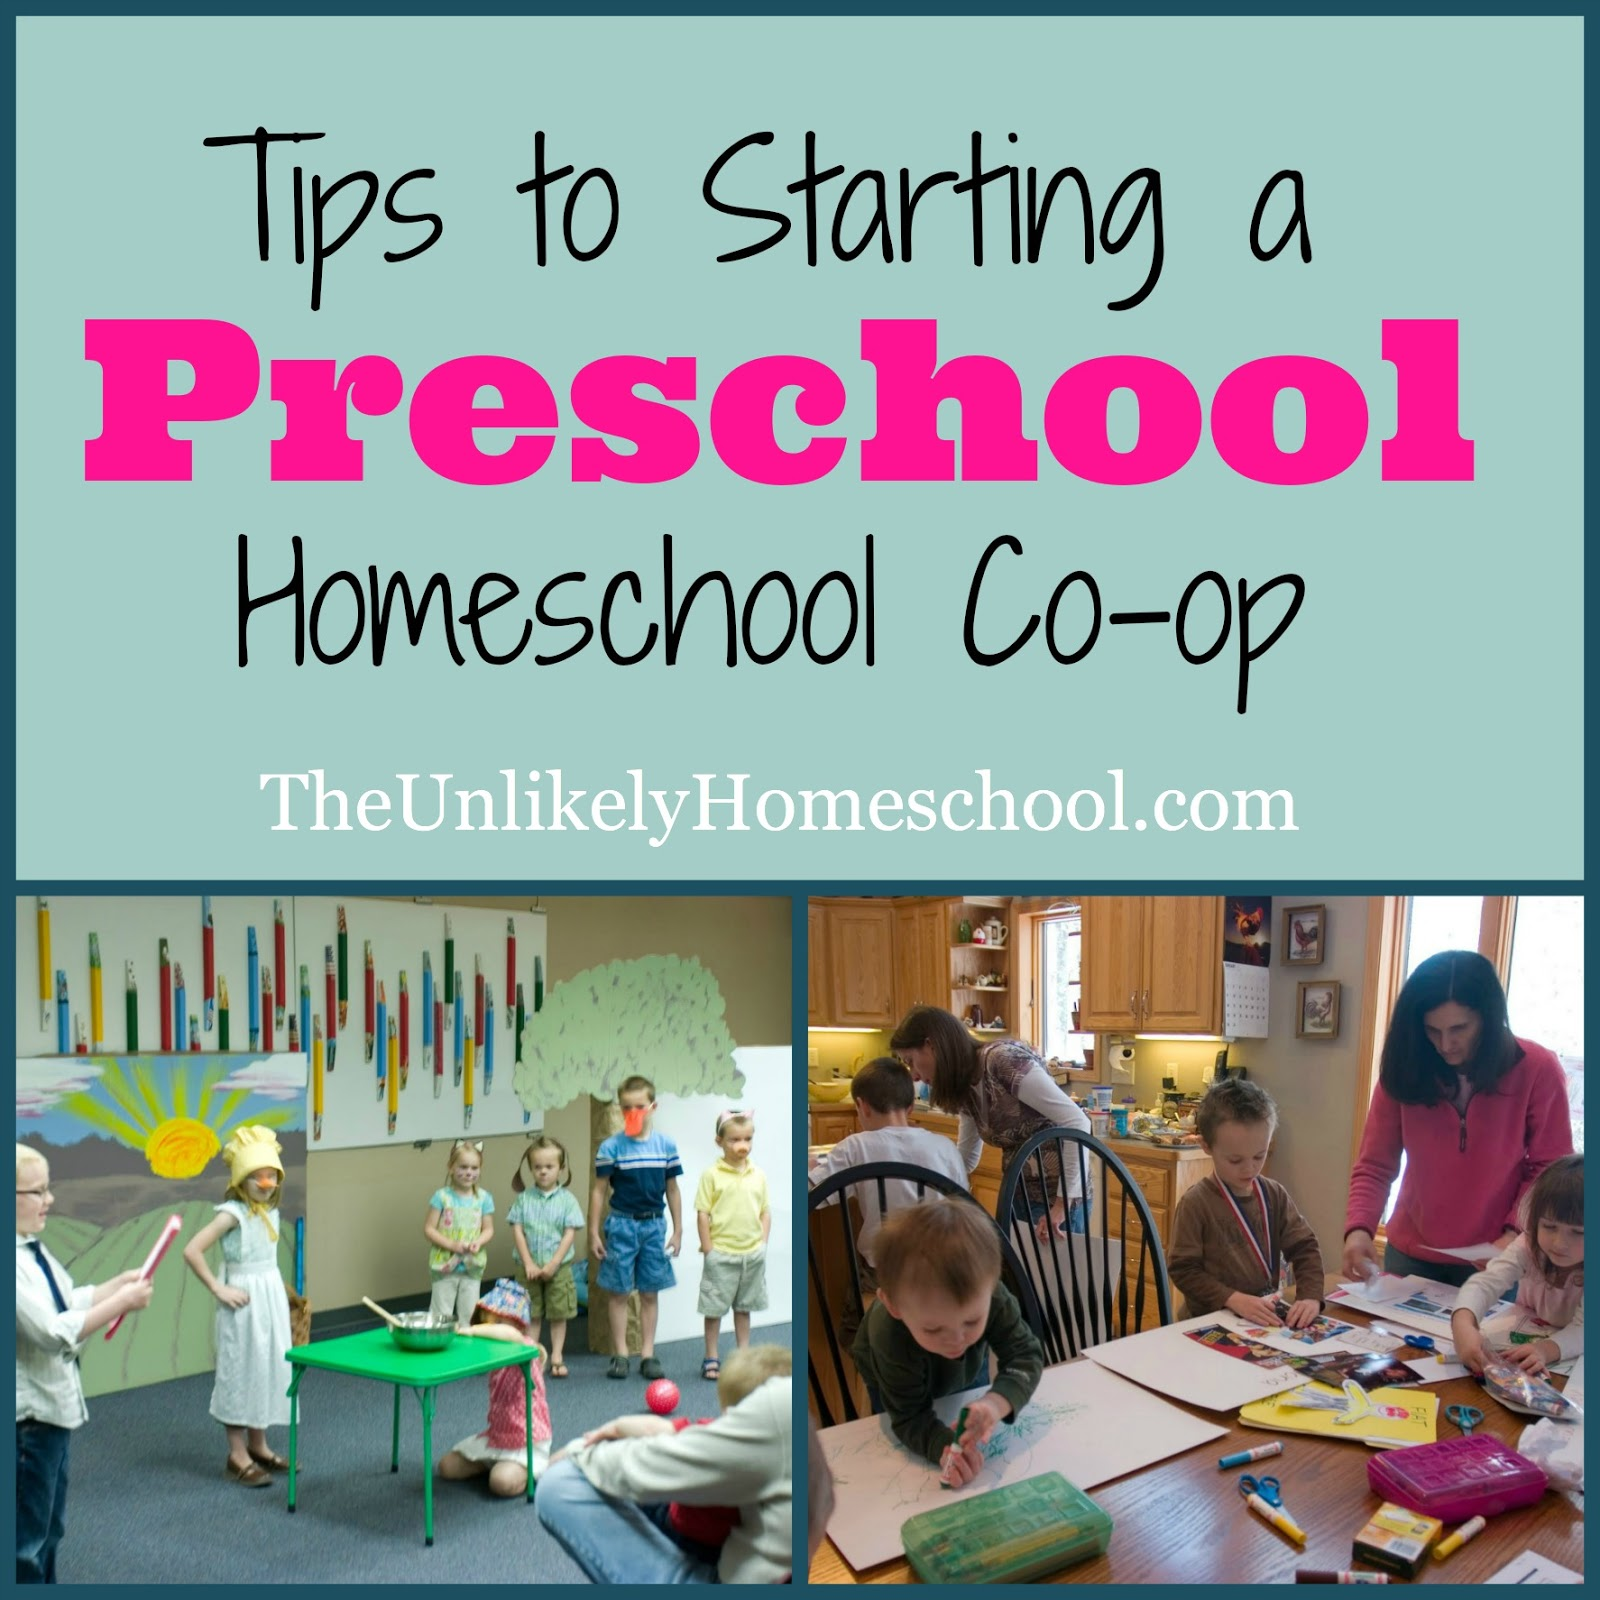 The Unlikely Homeschool: Tips To Starting A Preschool